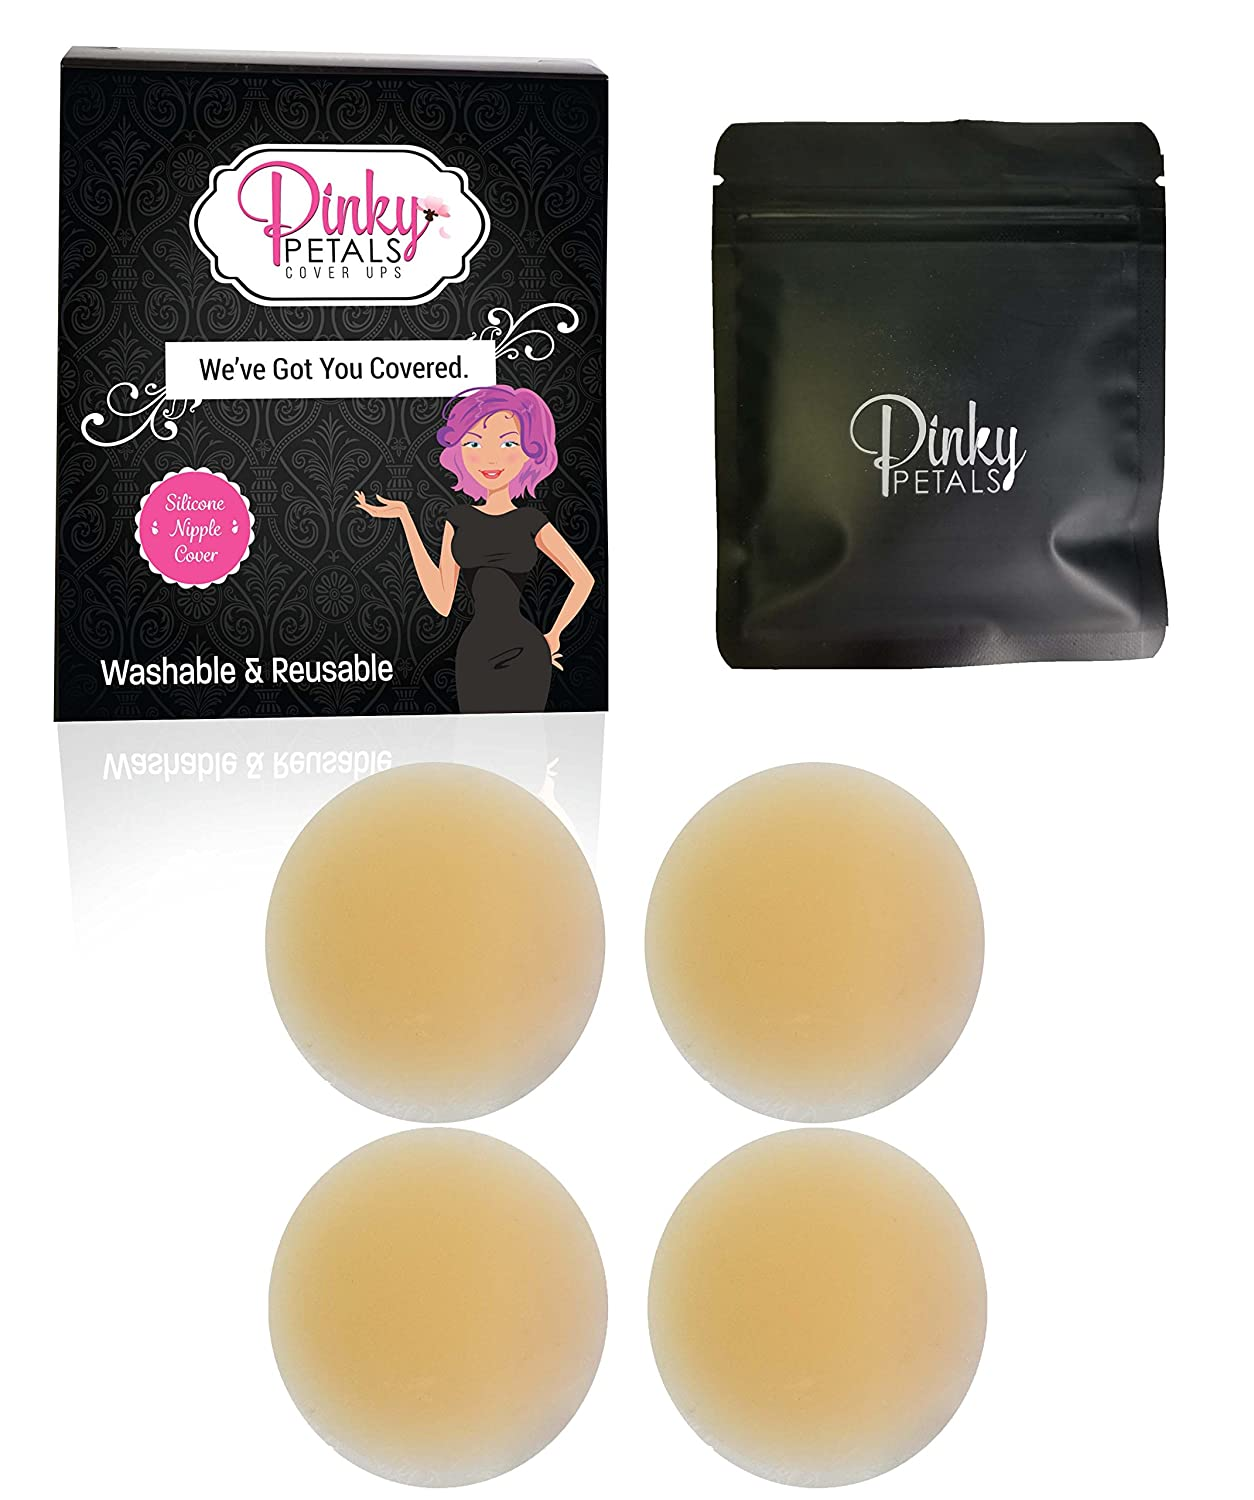 Pinky Petals Women's Nipple Cover Thin Pasties, Reusable Silicone Breast Sticky, Nude